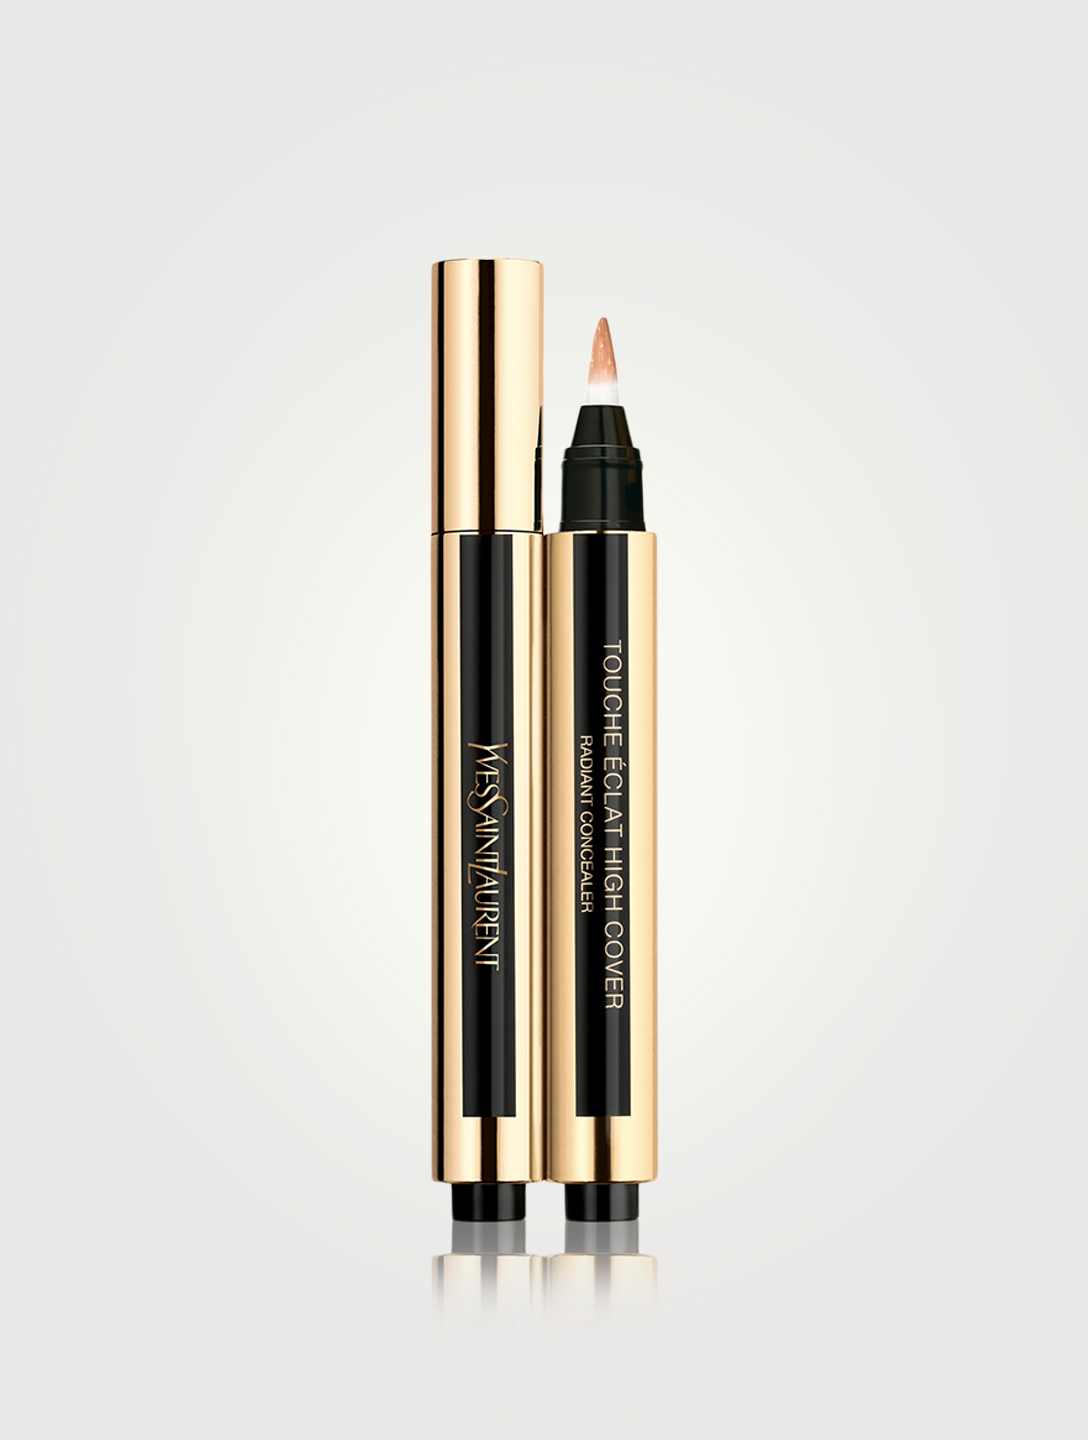 YVES SAINT LAURENT Touche Éclat Stylo High Cover Concealer Beauty Neutral